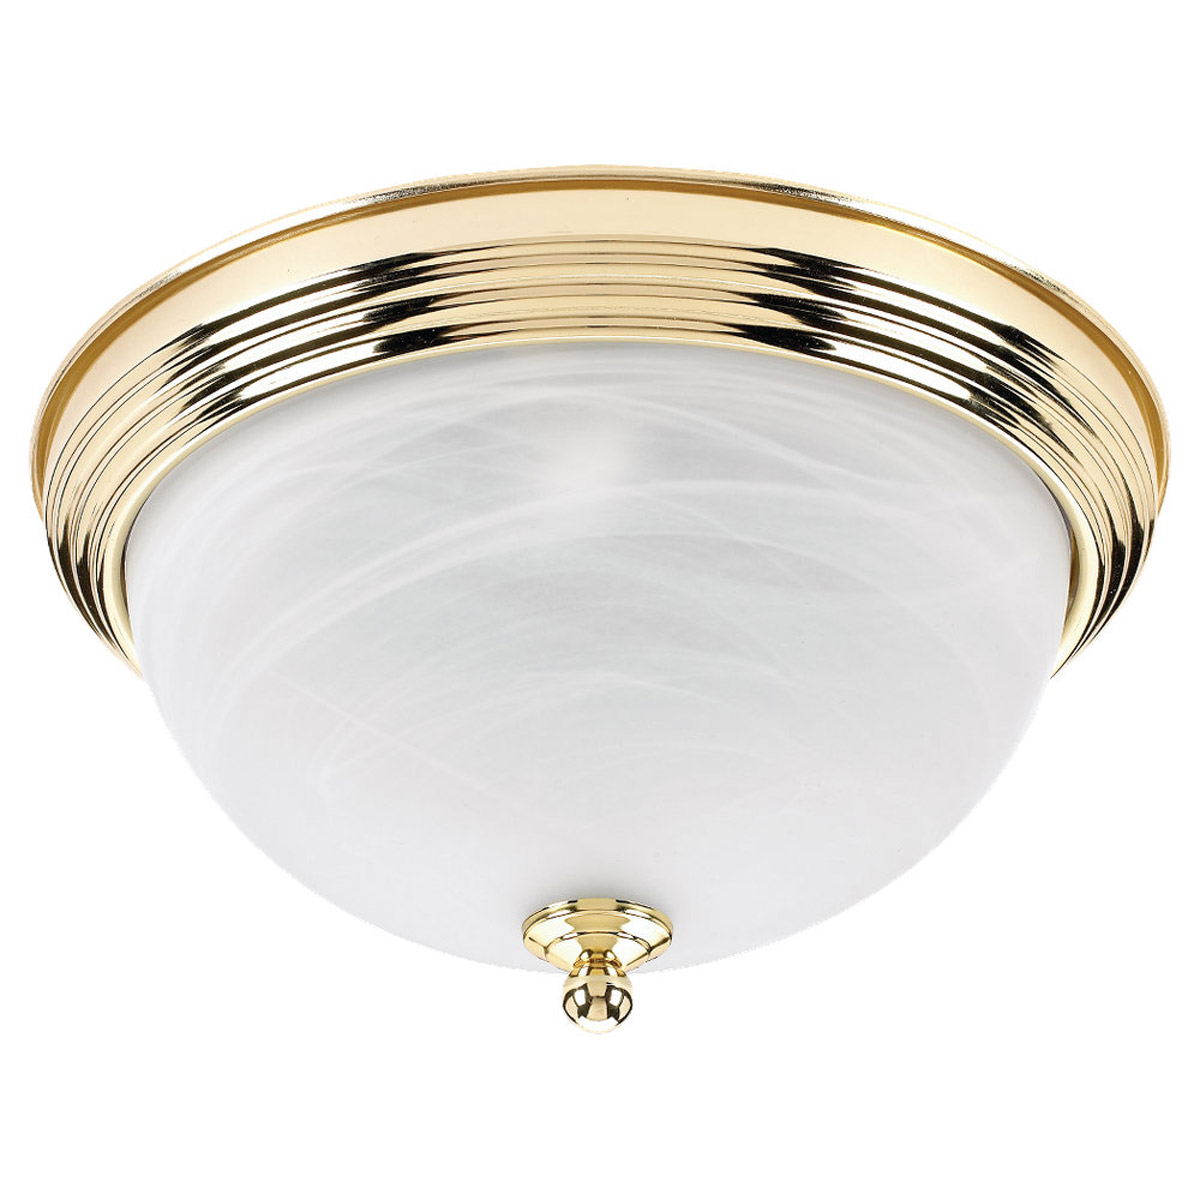 Sea Gull Lighting Ridley 3 Light Flush Mount in Polished Brass 79178BLE-02 photo